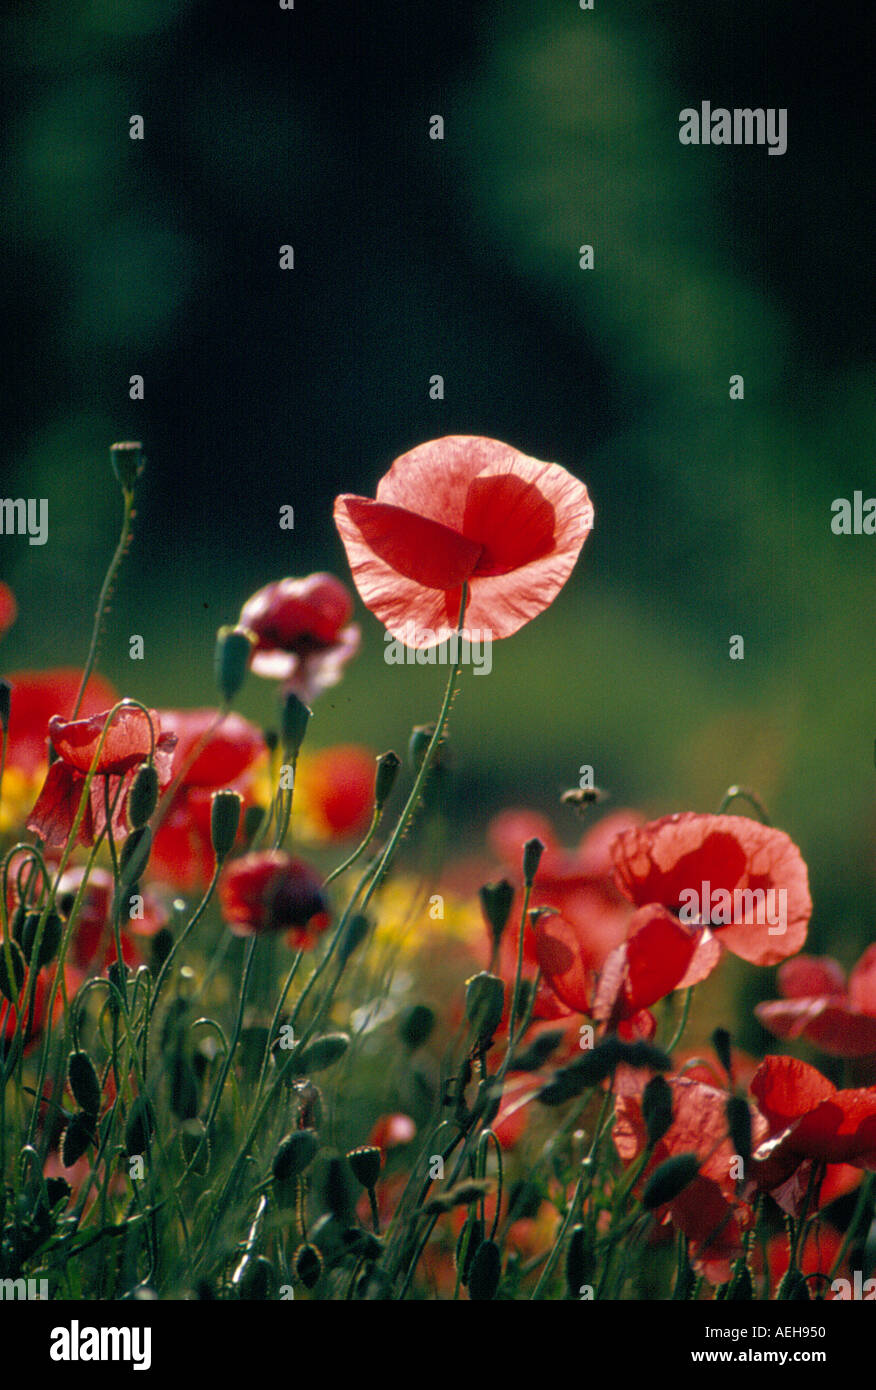 poppies. Photo by Willy Matheisl - Stock Image